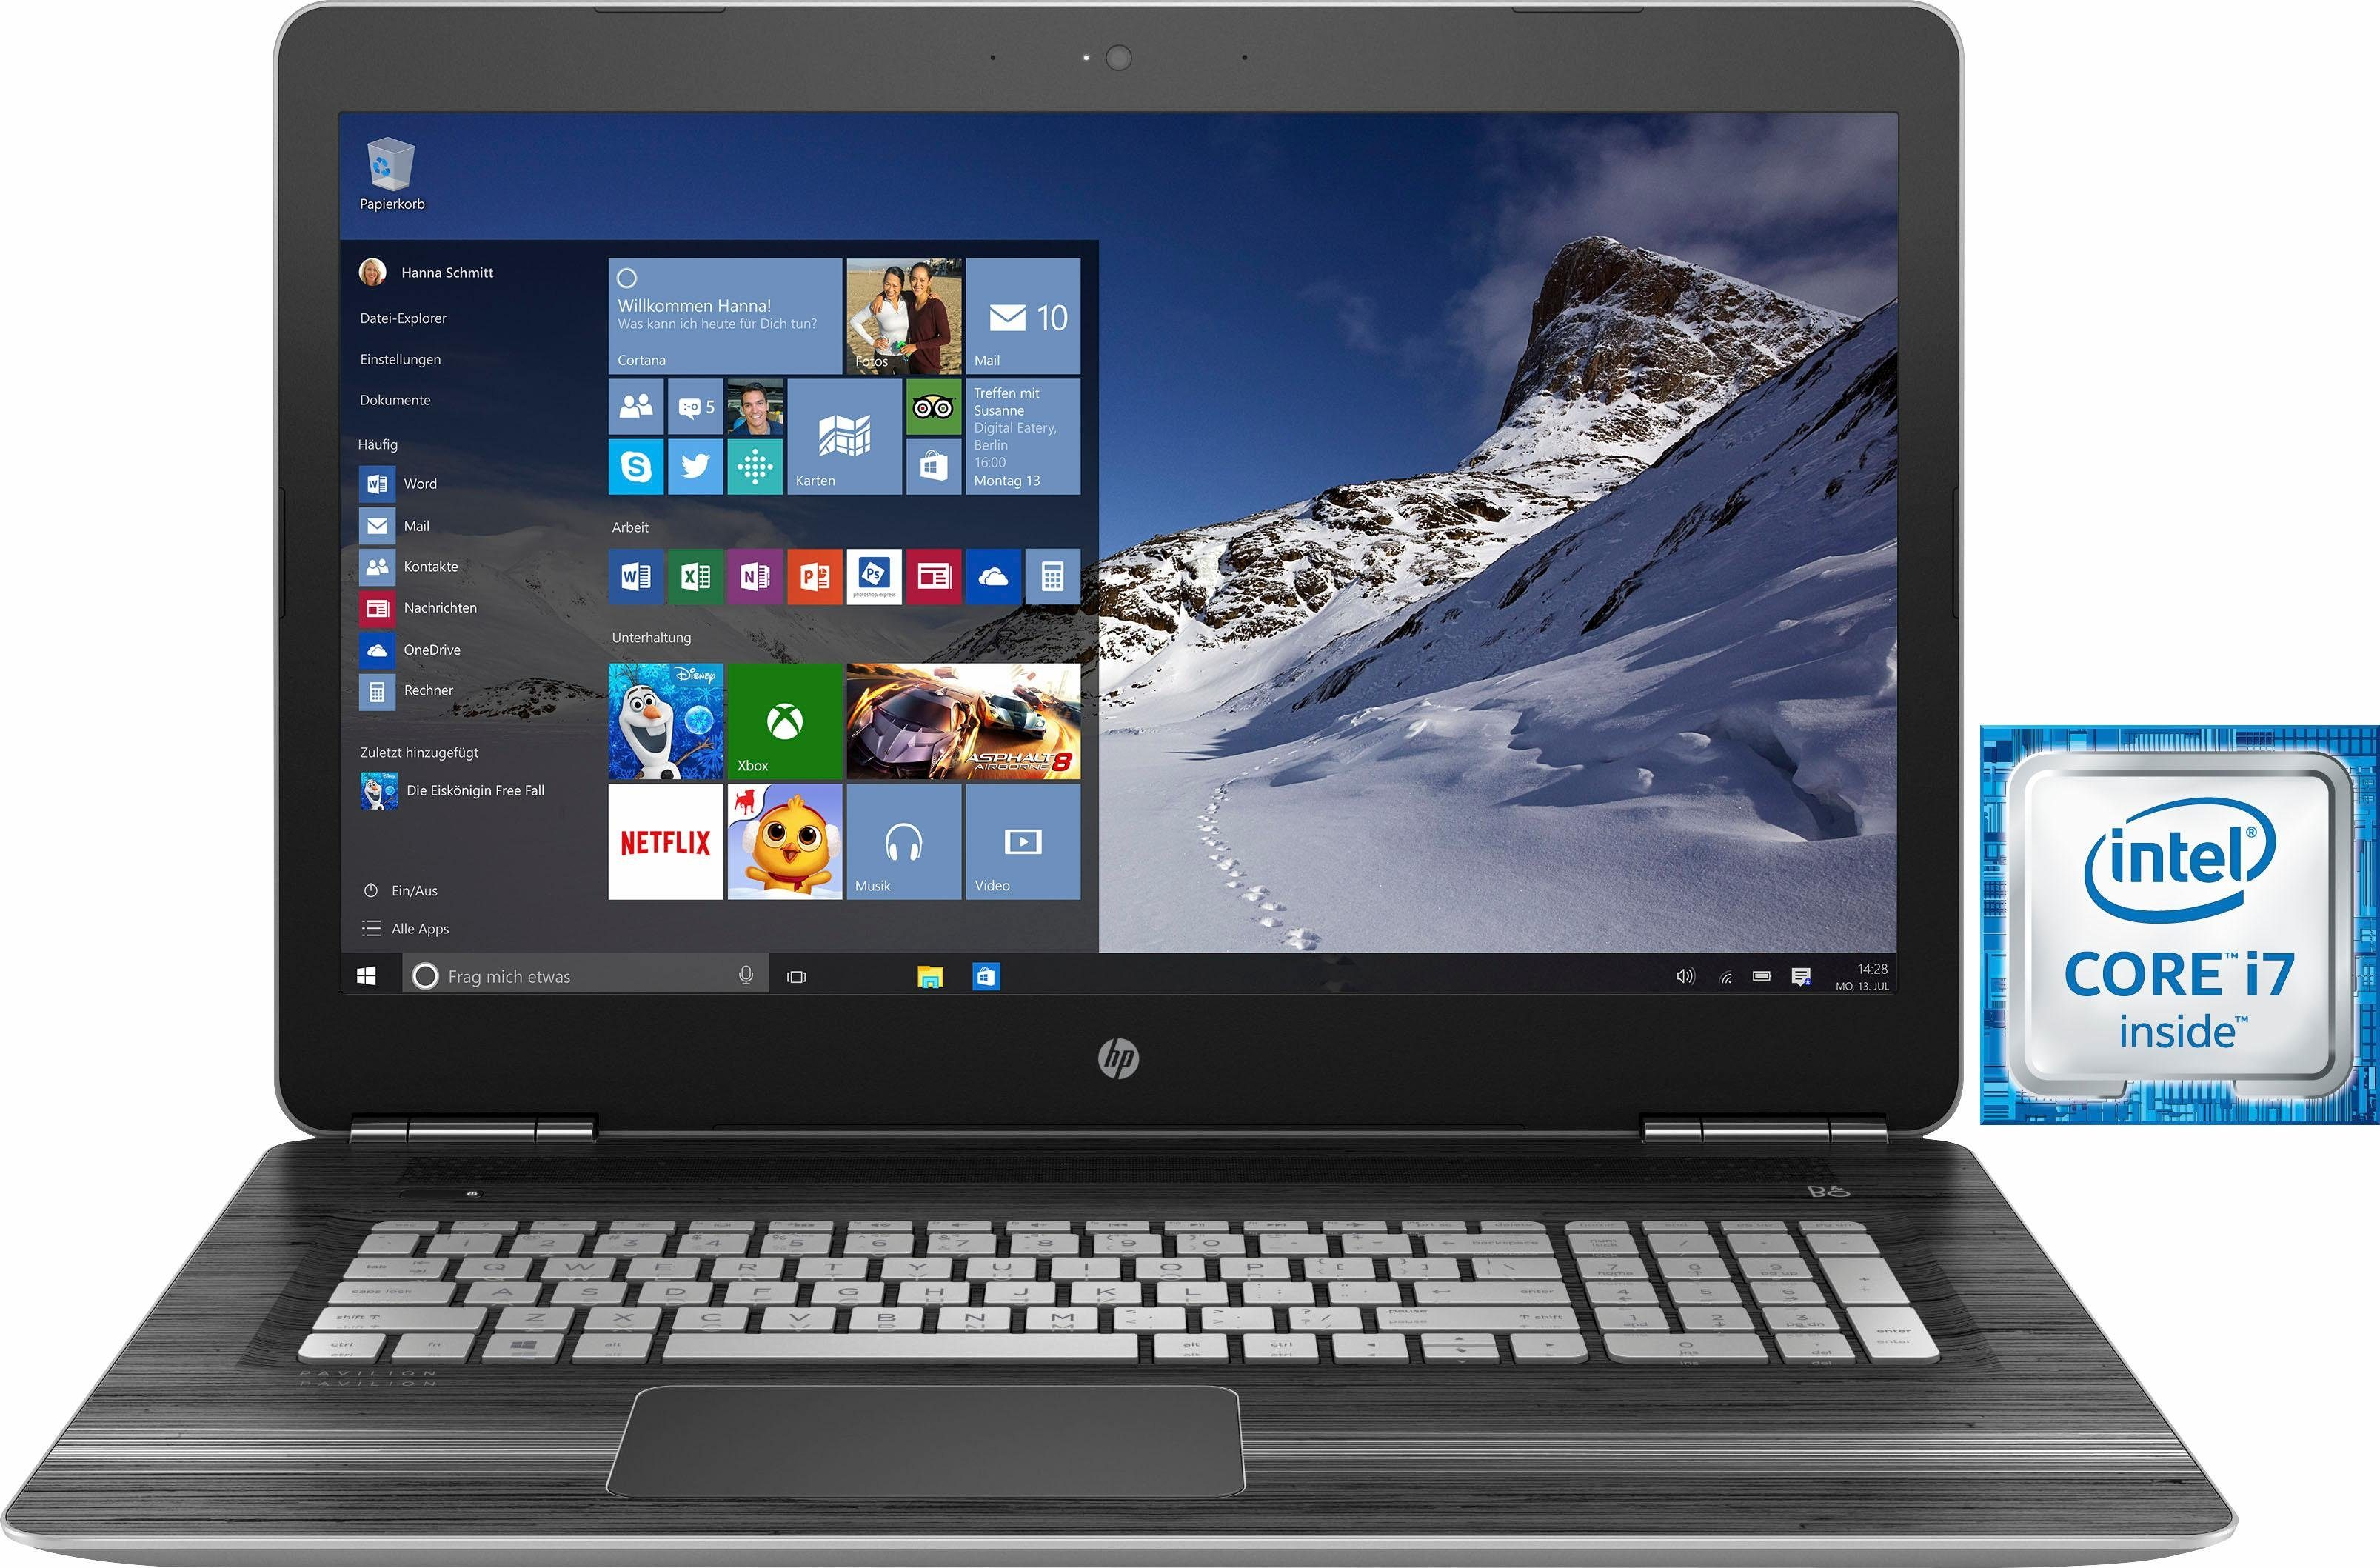 HP Pavilion 17-ab209ng Notebook, Intel® Core™ i7, 43,9 cm (17,3 Zoll), 1128 GB Speicher